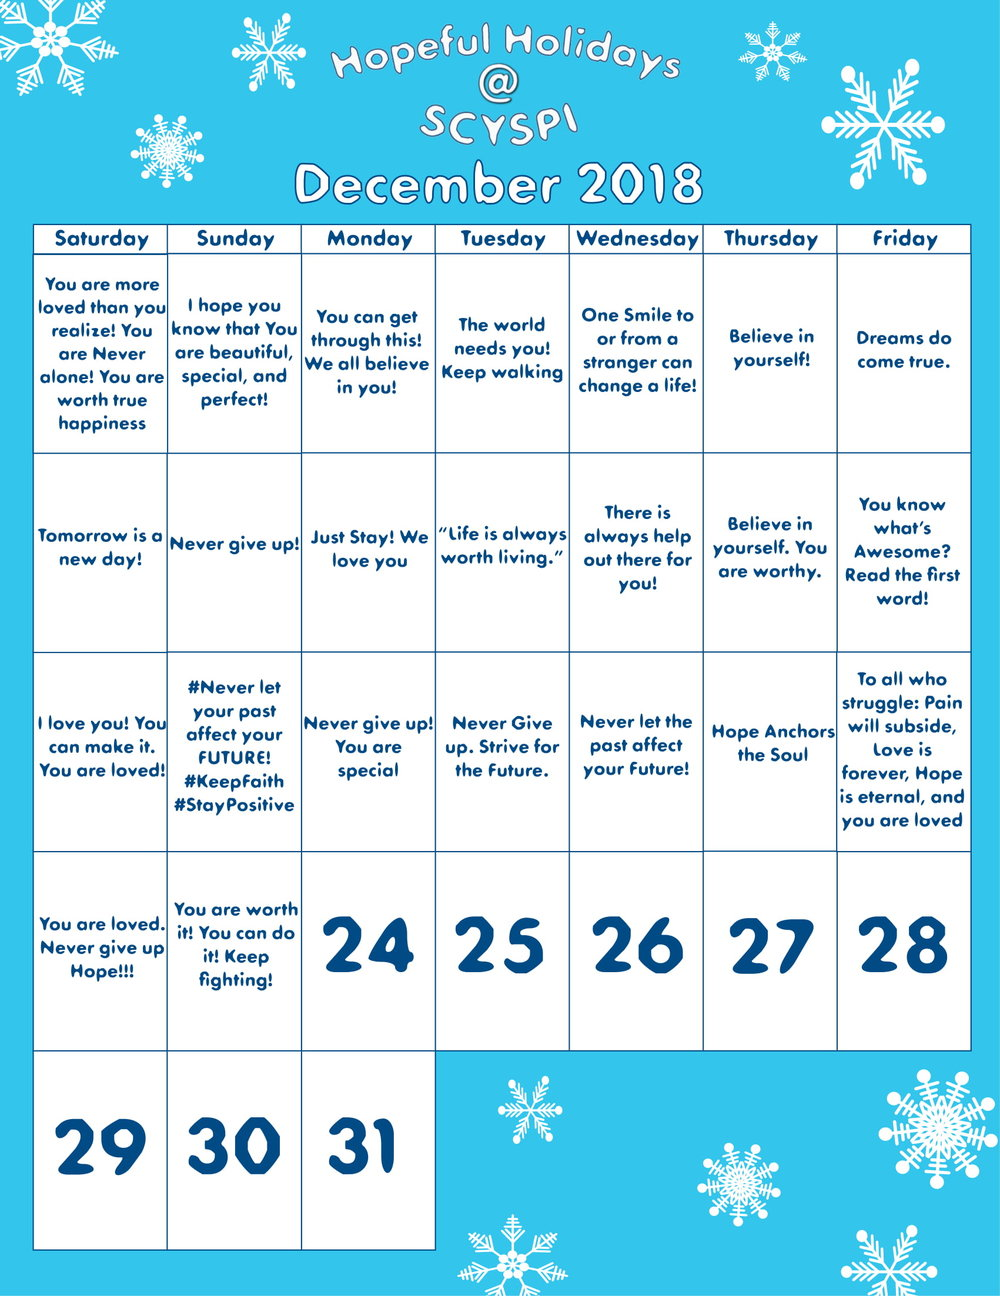 hopeful holidays calendar dec 23rd-1.jpg